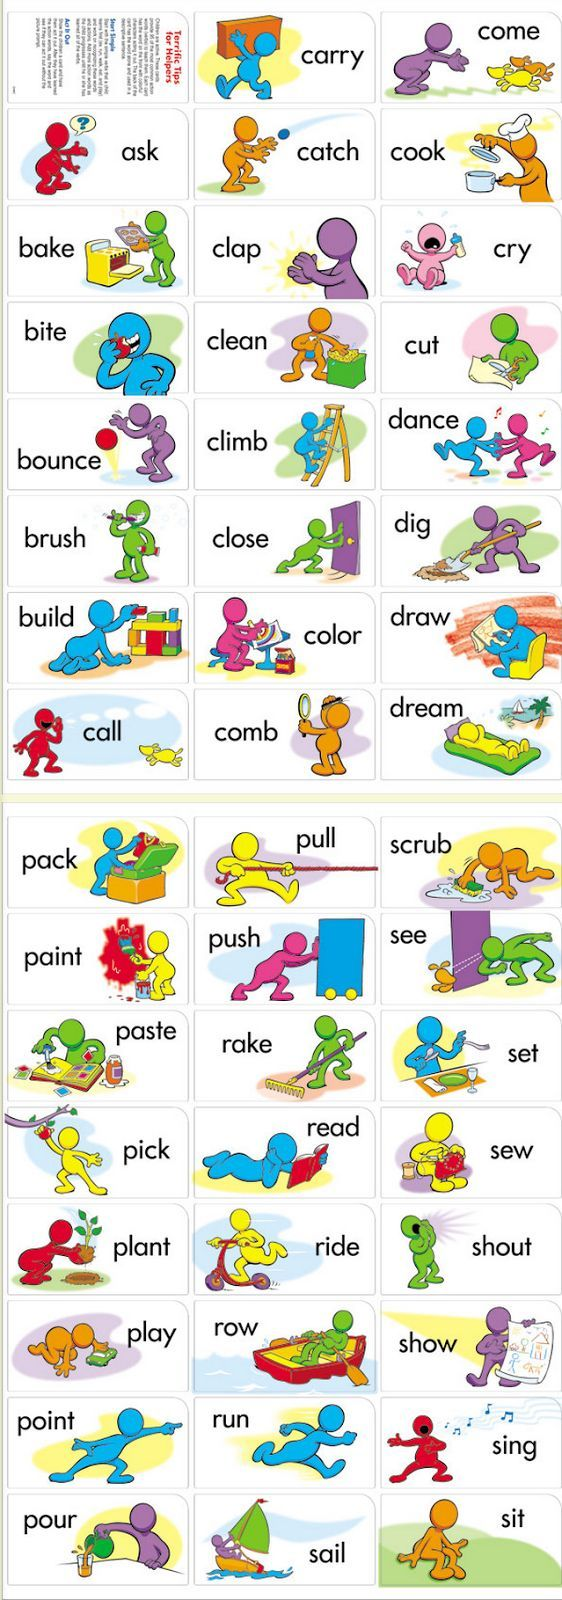 #verbs in #pictures 1